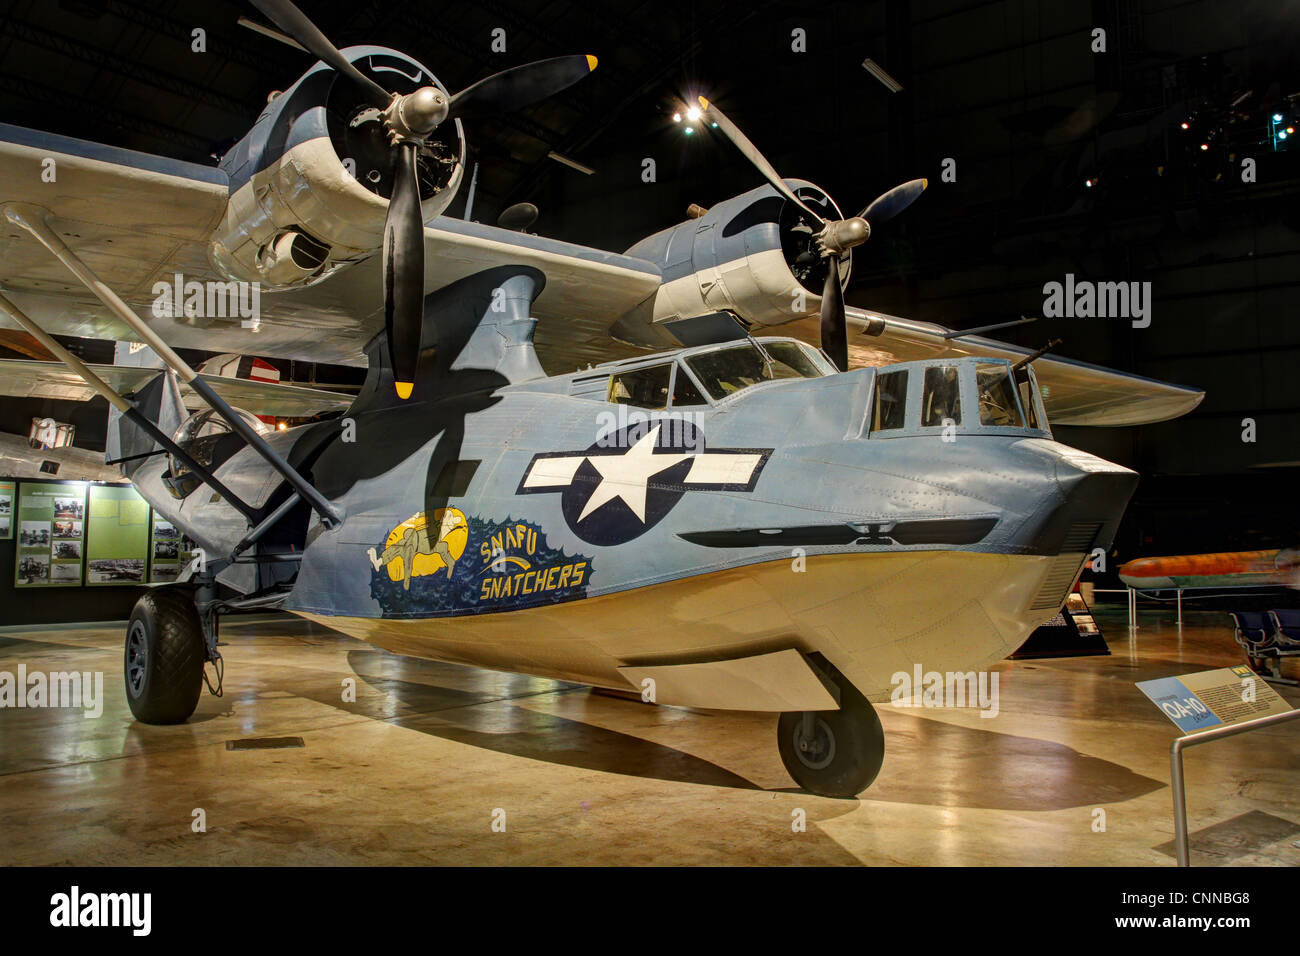 Airplane- Consolidated OA-10 Catalina named SNAFU Snatchers. Vintage World War 2. - Stock Image